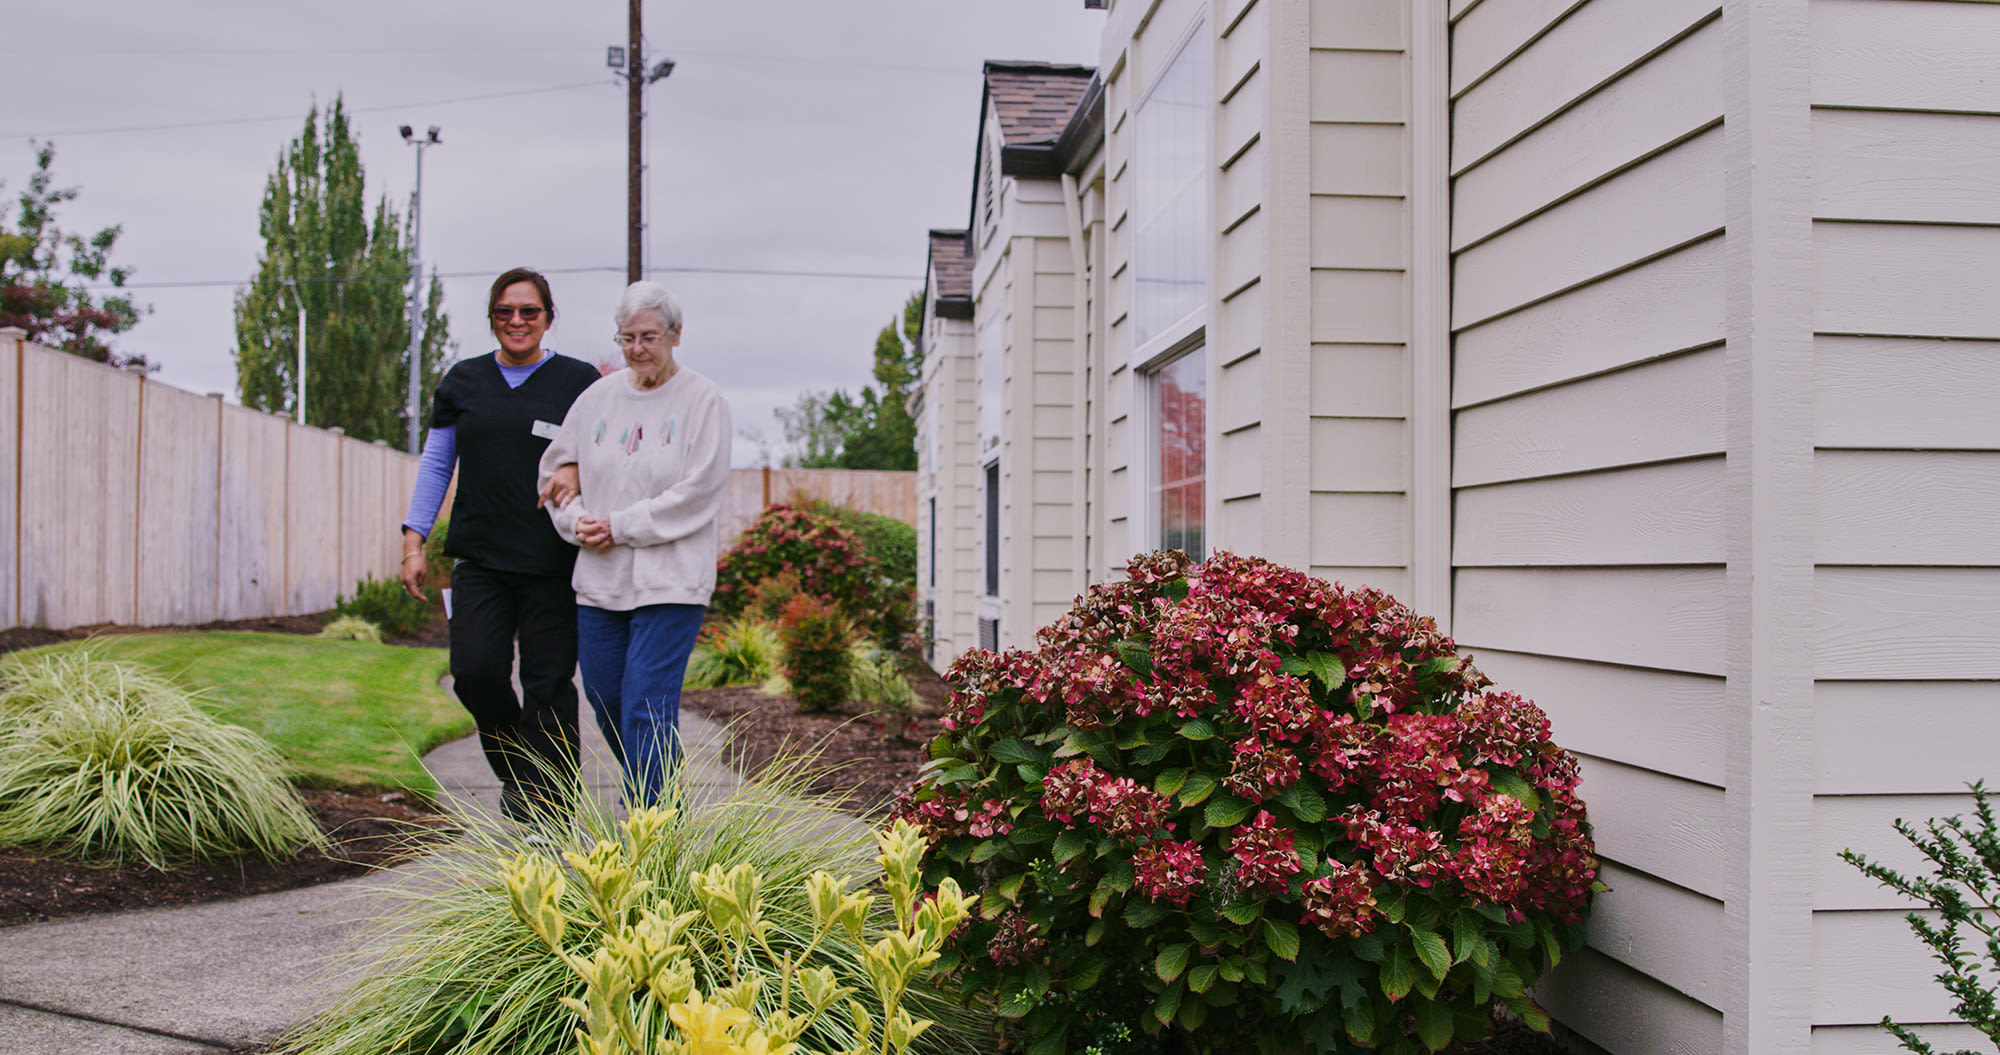 resident and a caretaker walking outside at New Dawn Memory Care in Colorado Springs, Colorado